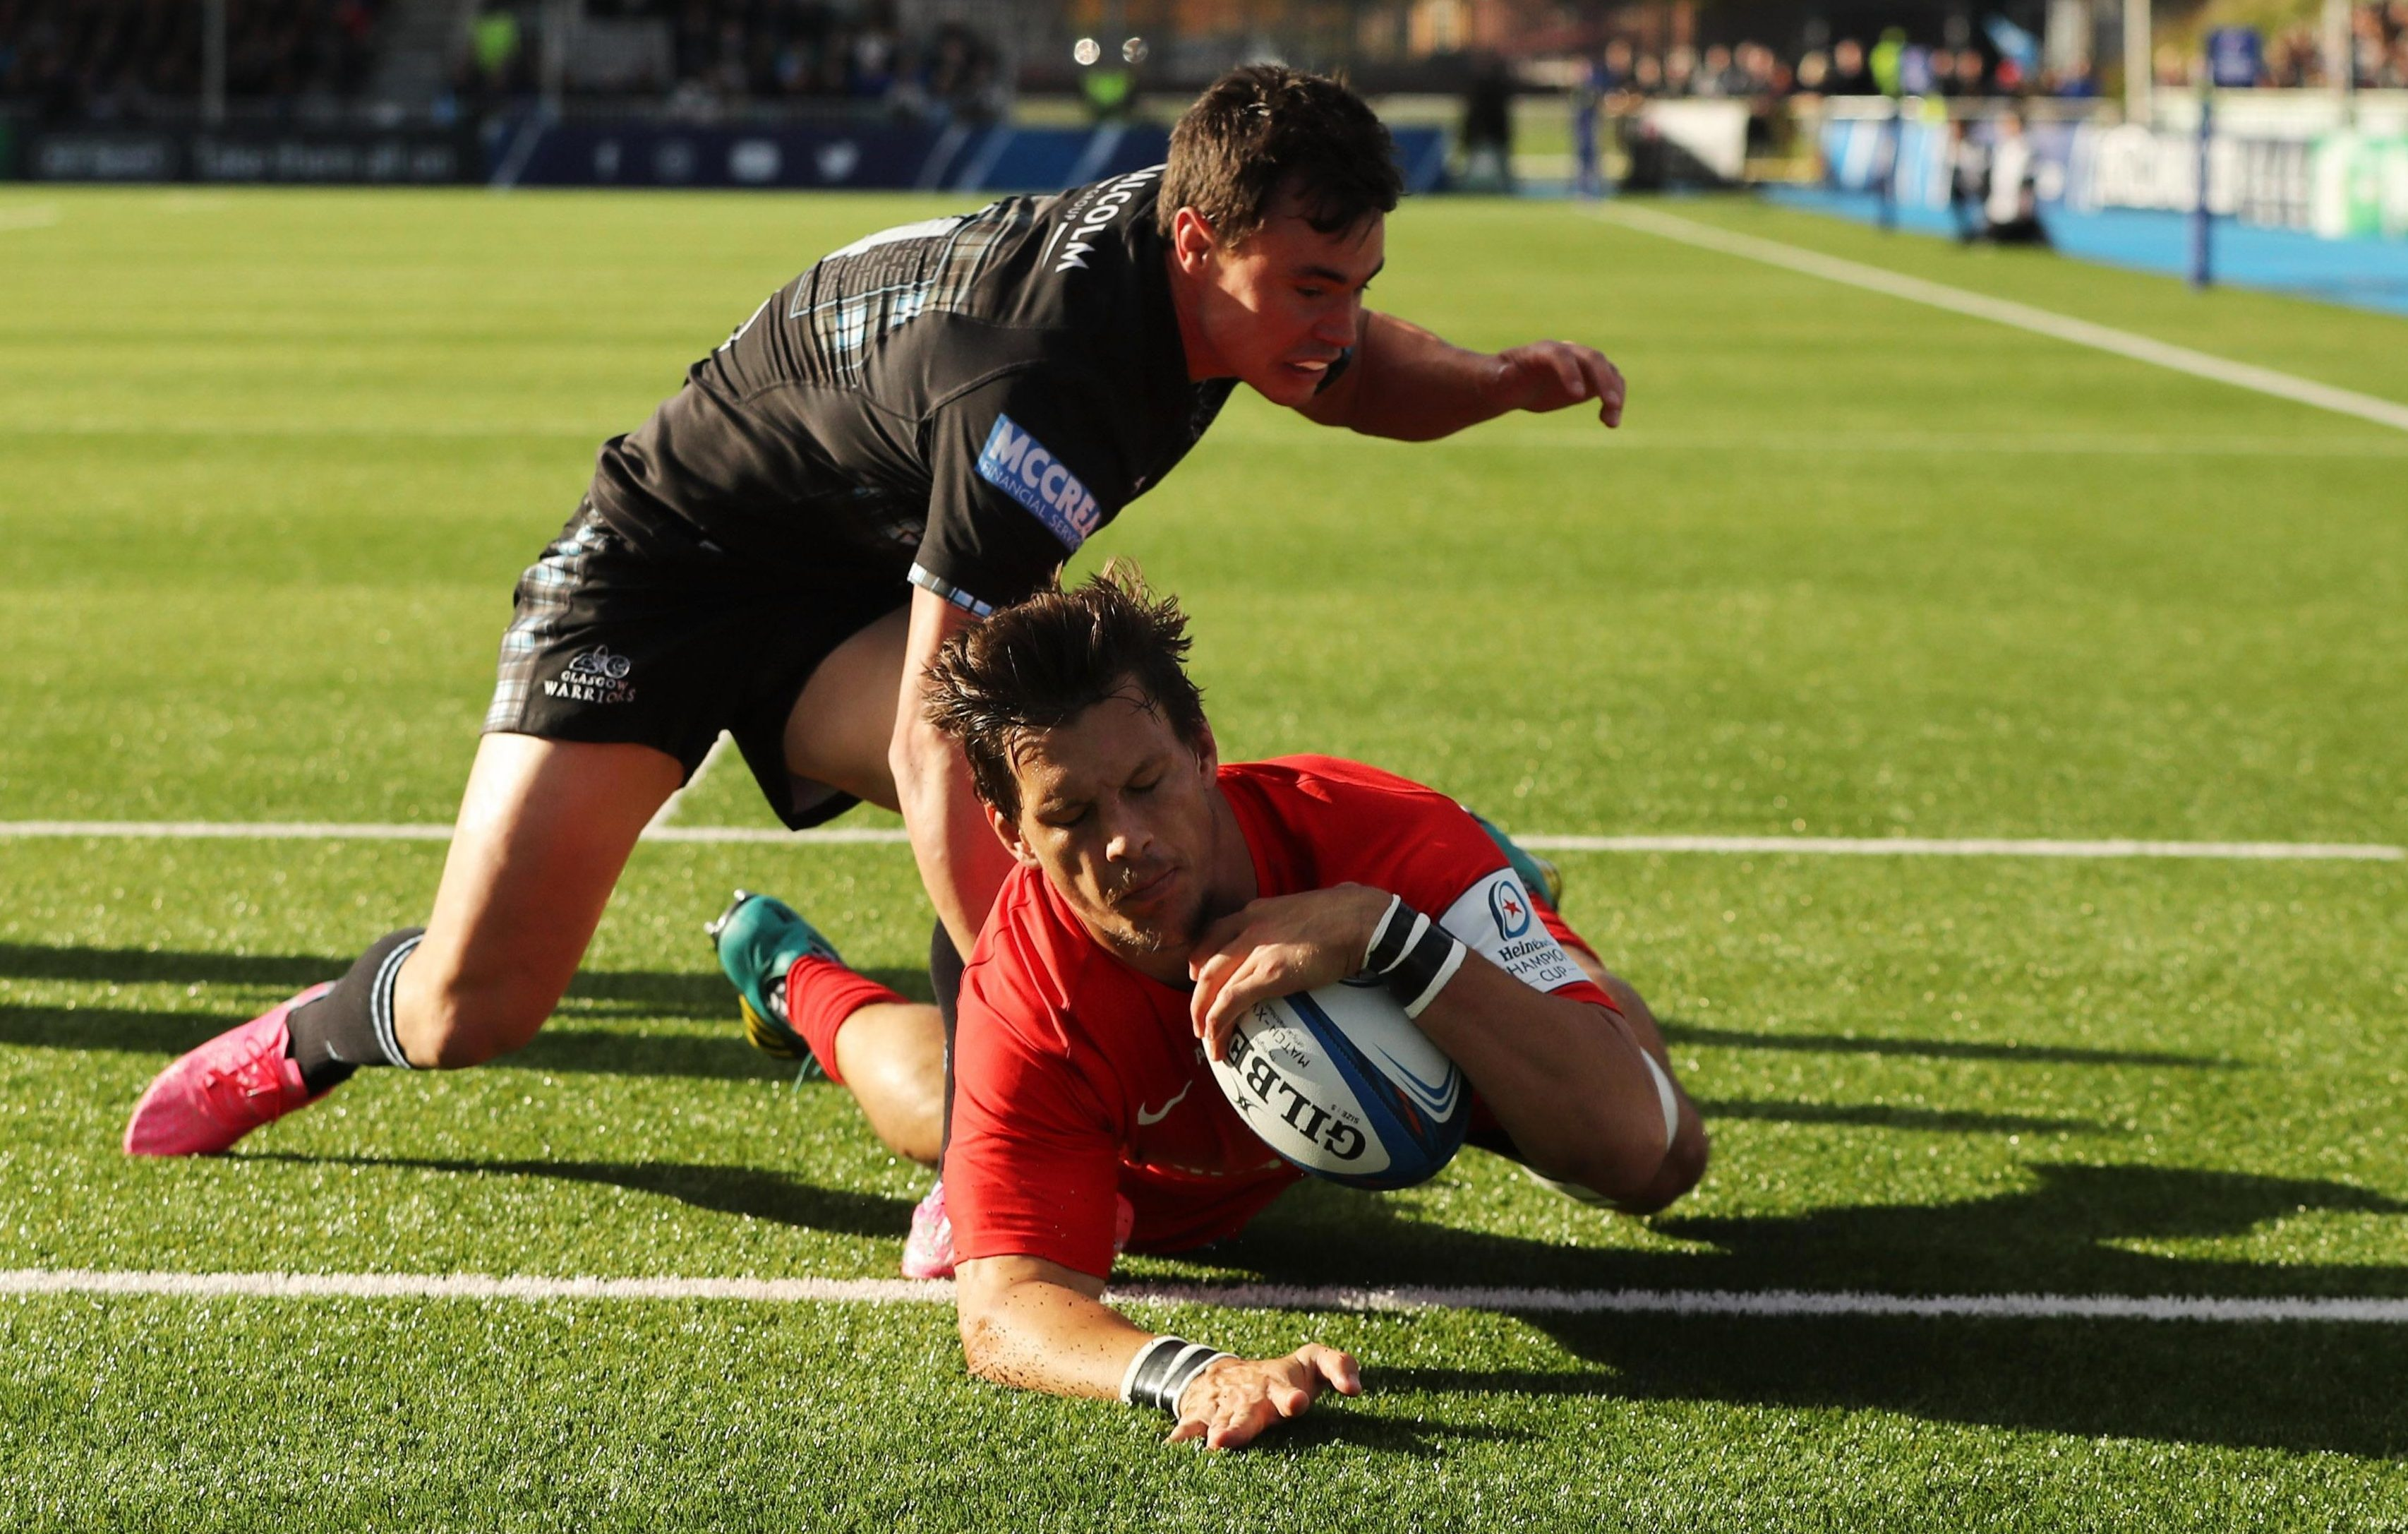 Michael Rhodes scored the only try of the game